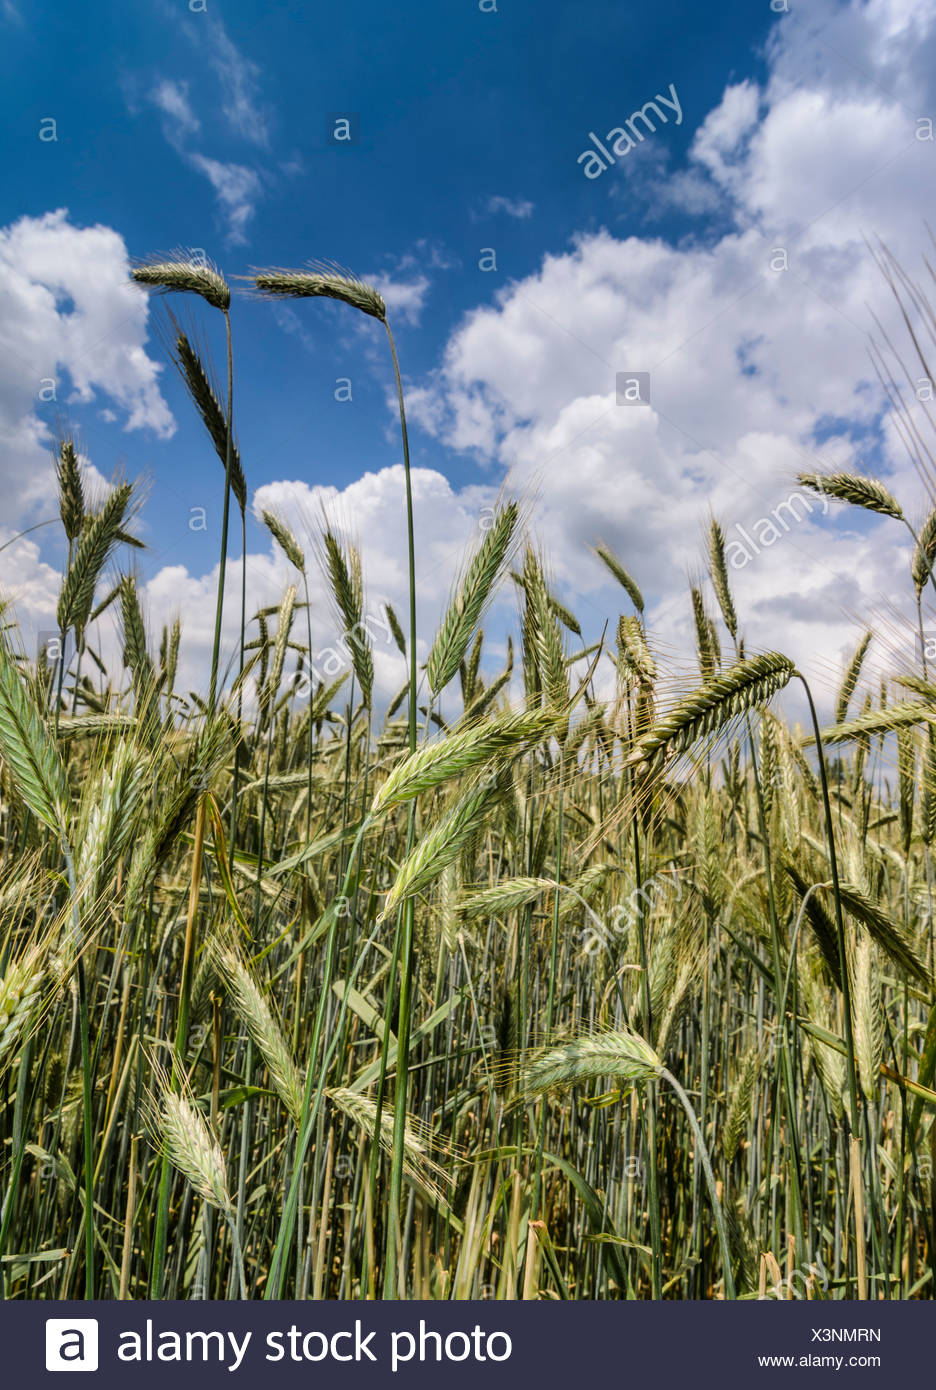 Green ears of Rye (Secale cereale), rye field against a blue sky with clouds - Stock Image